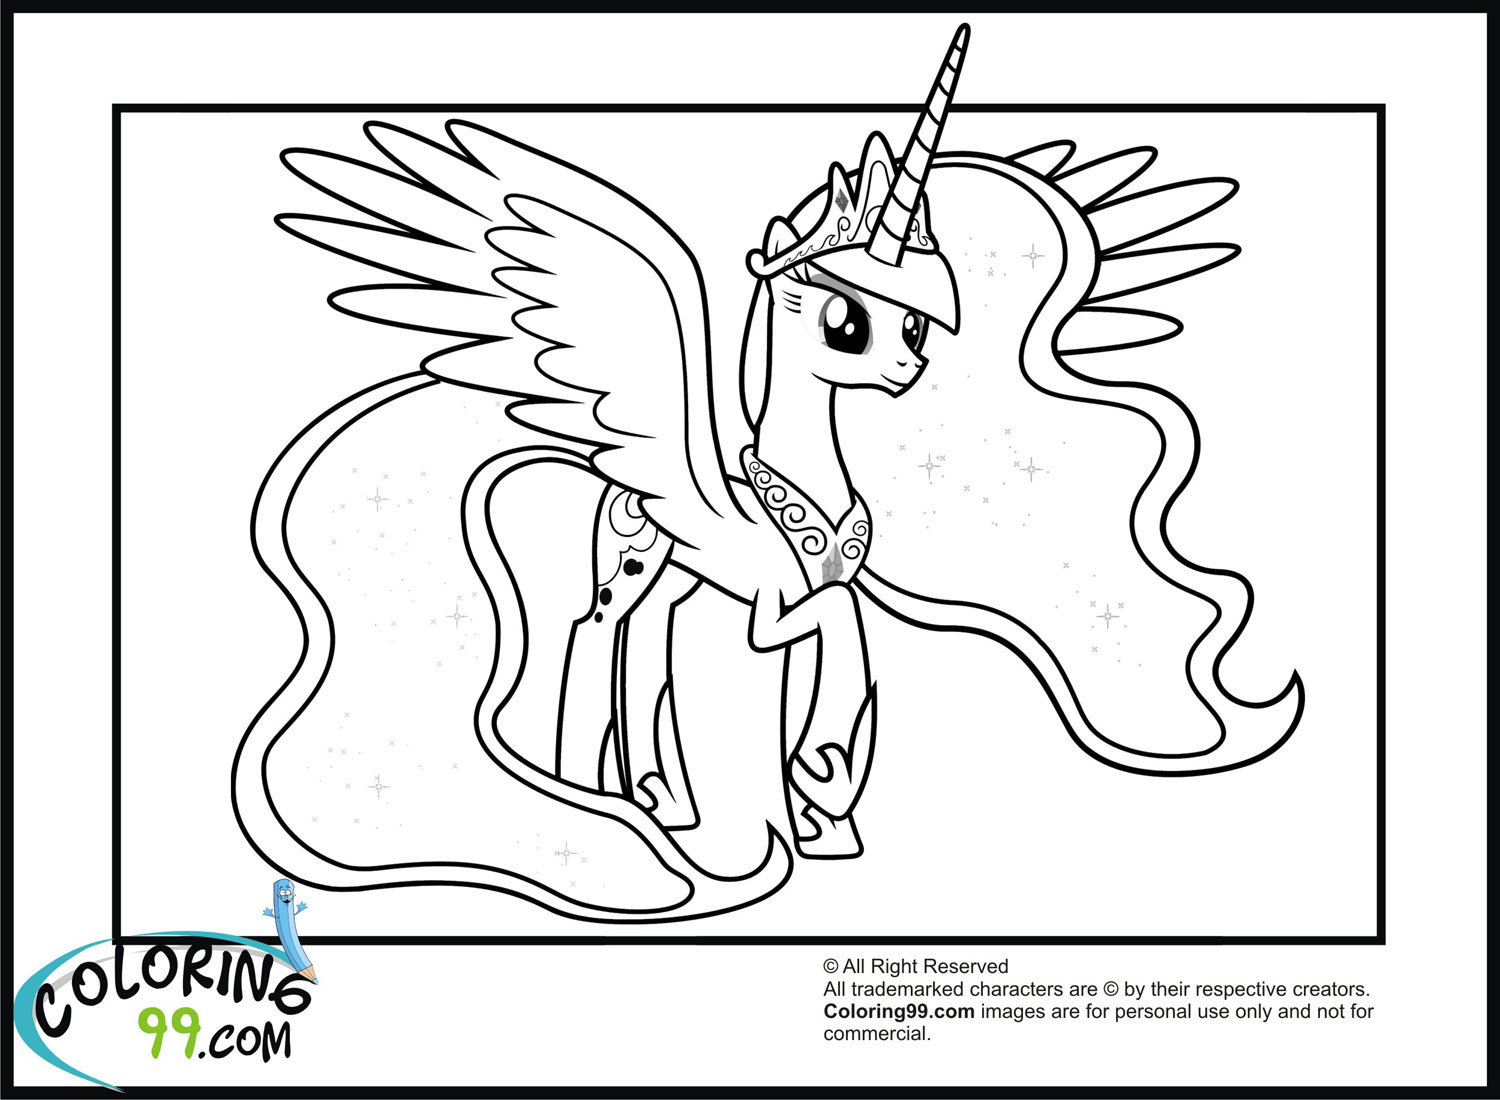 Coloring Pages My Little Pony Princess Luna : My little pony princess luna coloring pages team colors